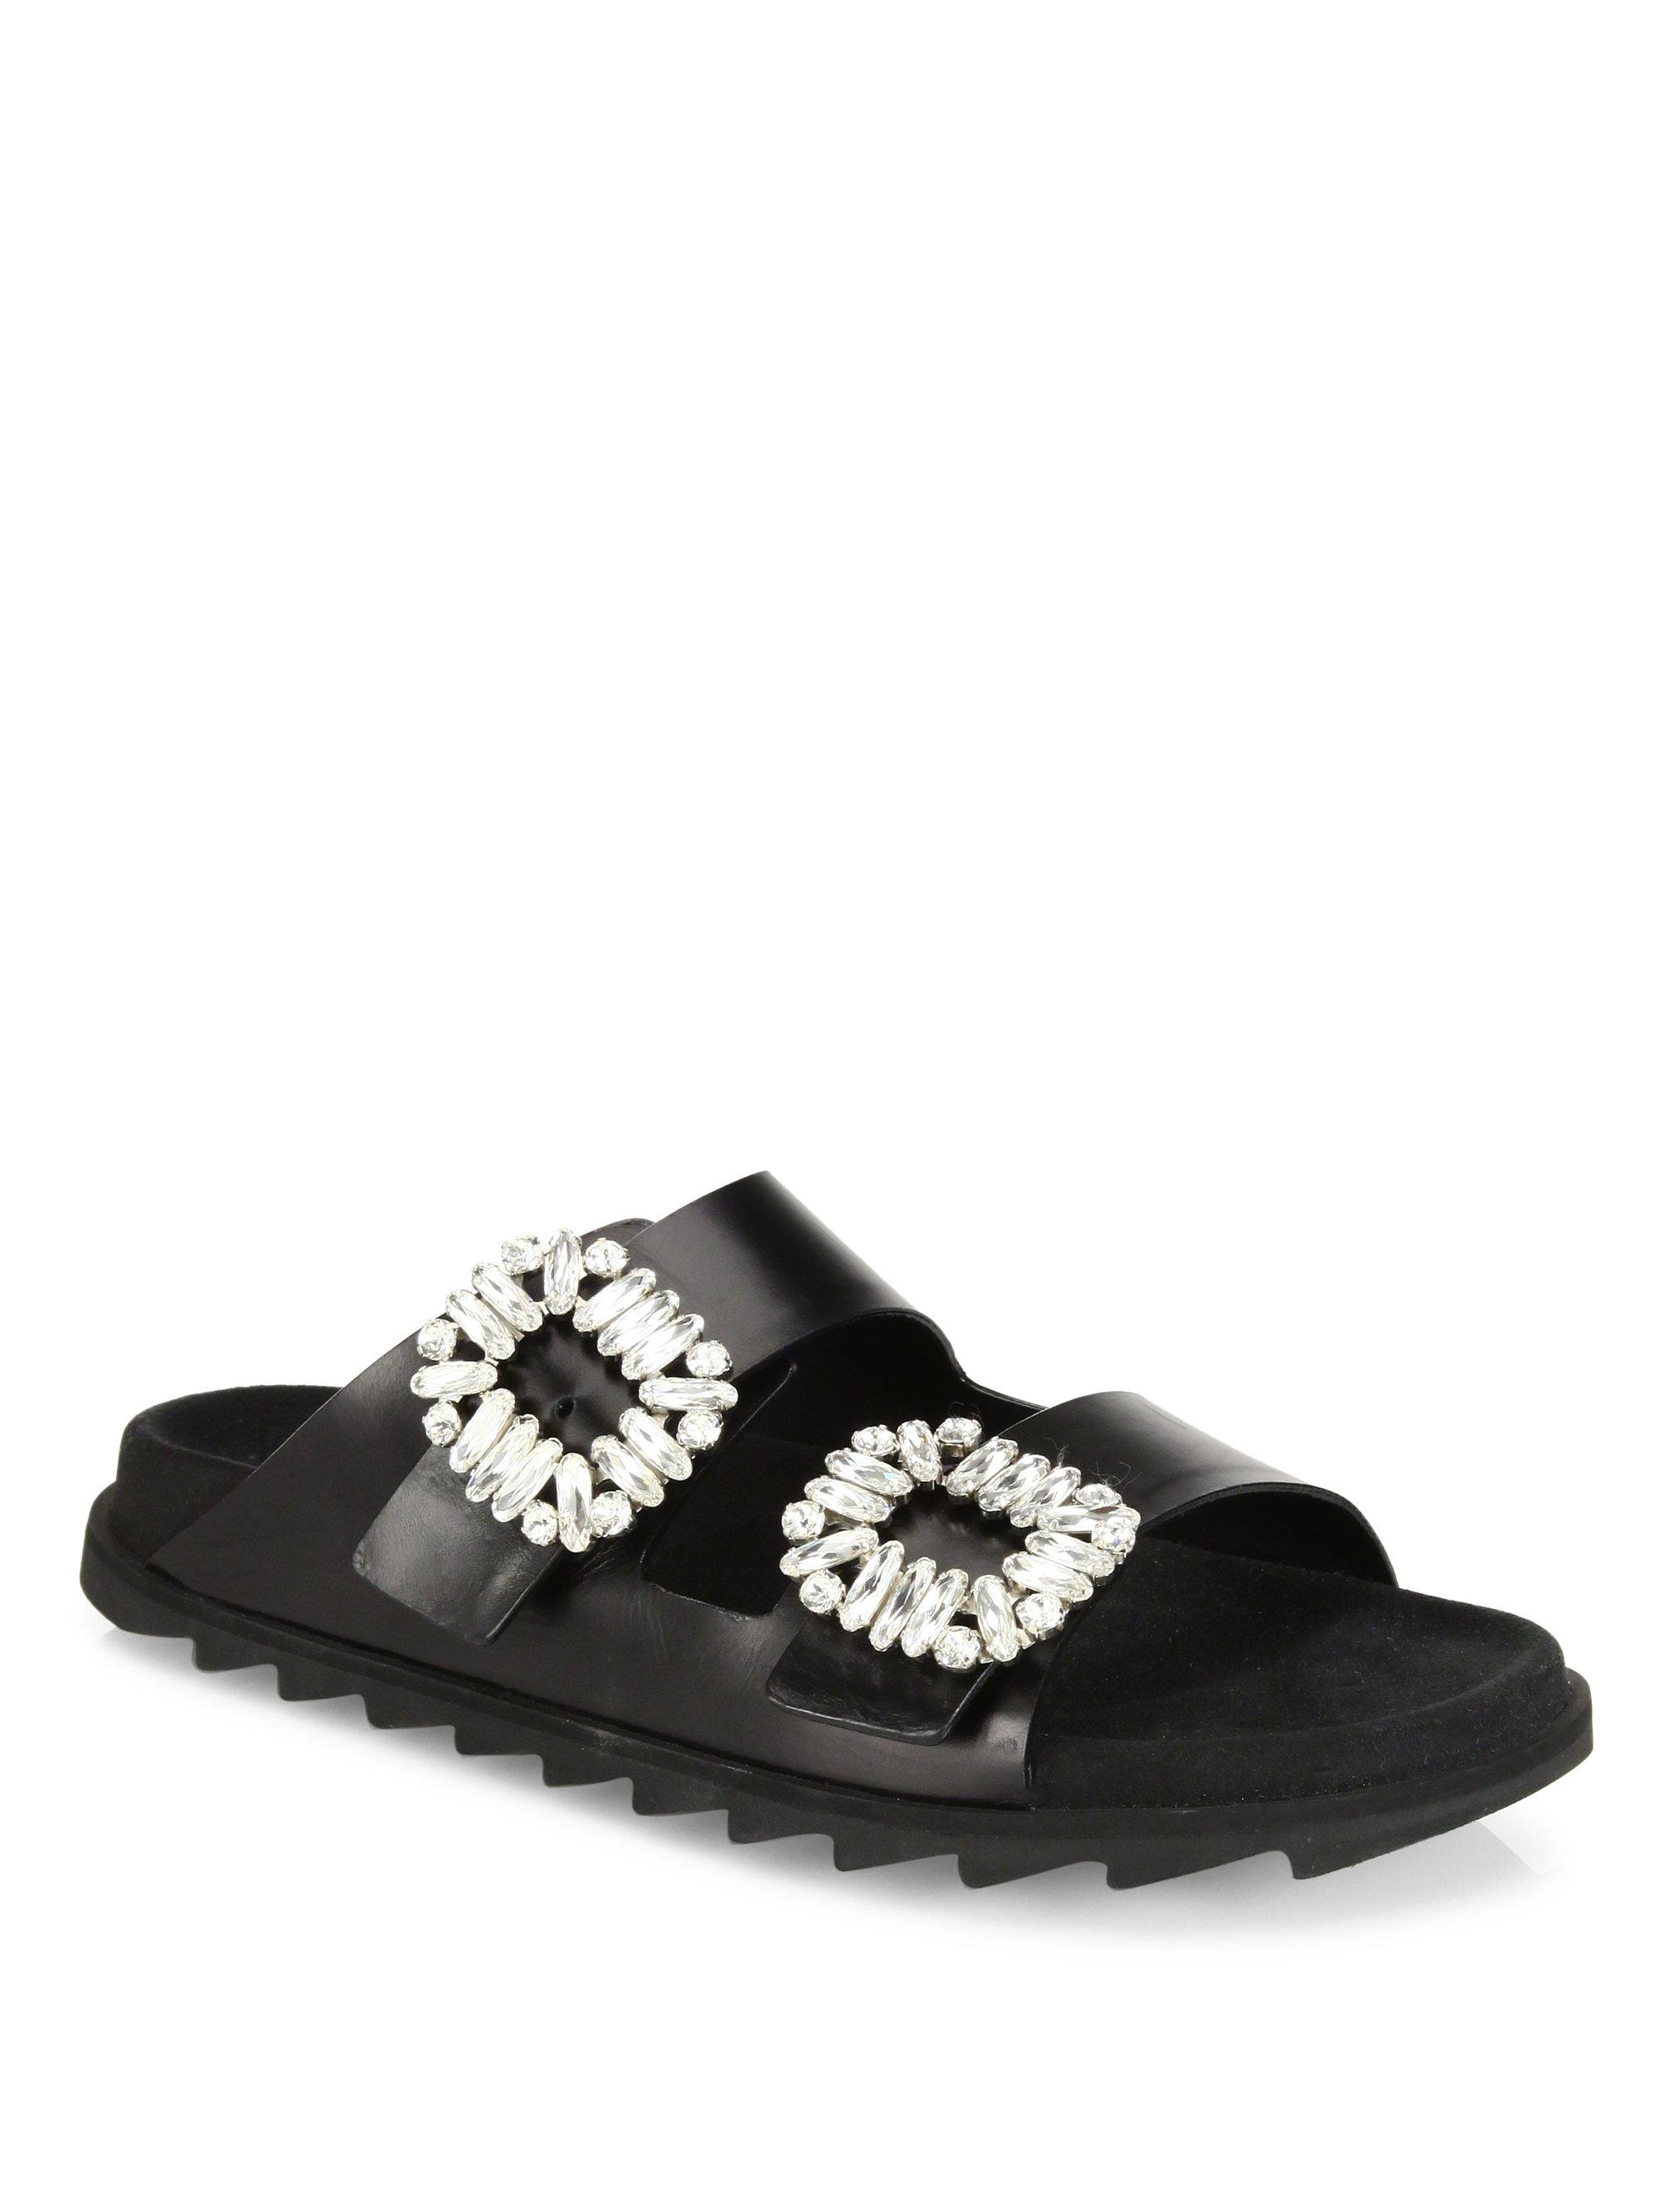 Roger Vivier. Women's Black Visone Sandals